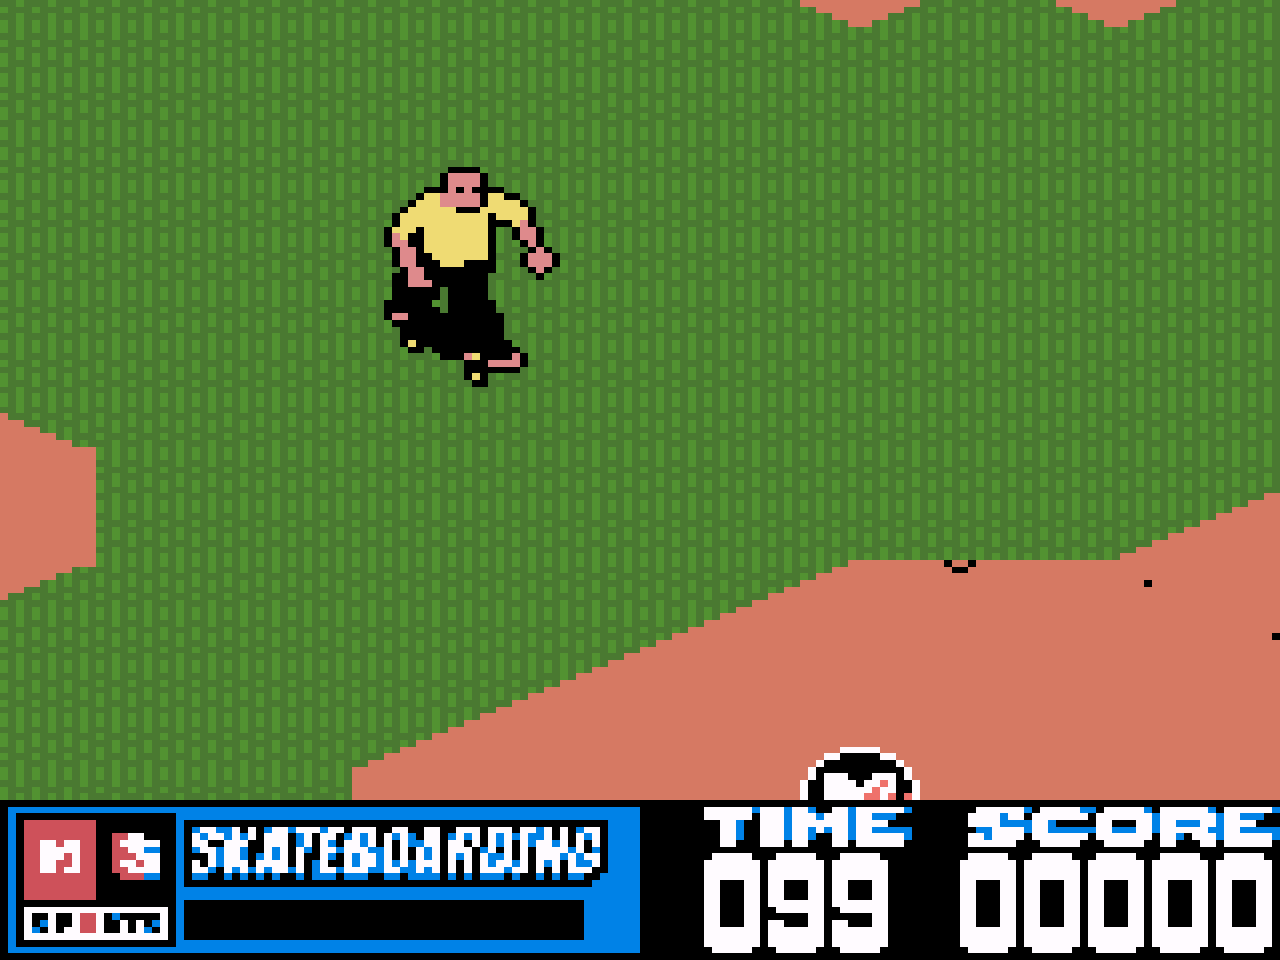 https://s3.eu-west-3.amazonaws.com/games.anthony-dessalles.com/MTV Sports Skateboarding featuring Andy MacDonald GBC 2020 - Screenshots/MTV Sports Skateboarding featuring Andy MacDonald-201115-140709.png